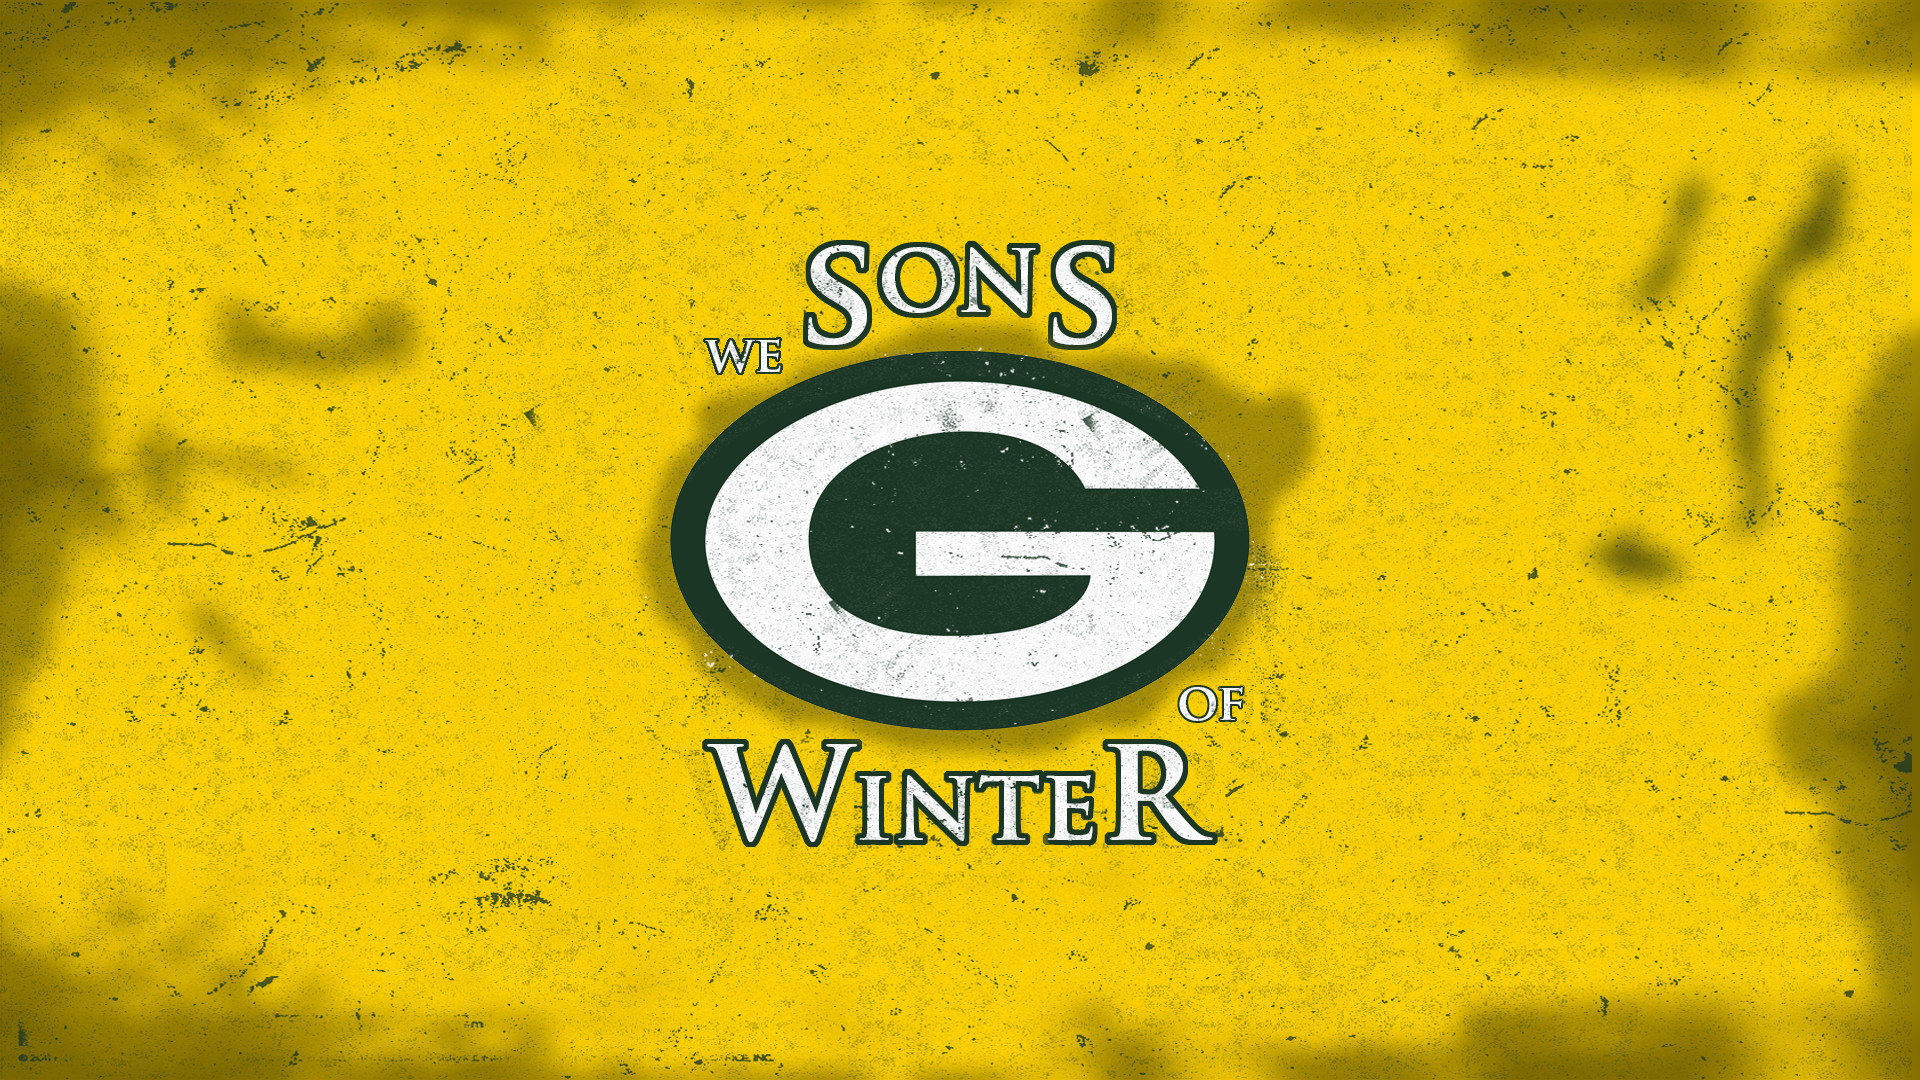 Green Bay Packers Wallpaper Hd 32 Amazing Nfl Game Of Thrones 1080p Wallpapers